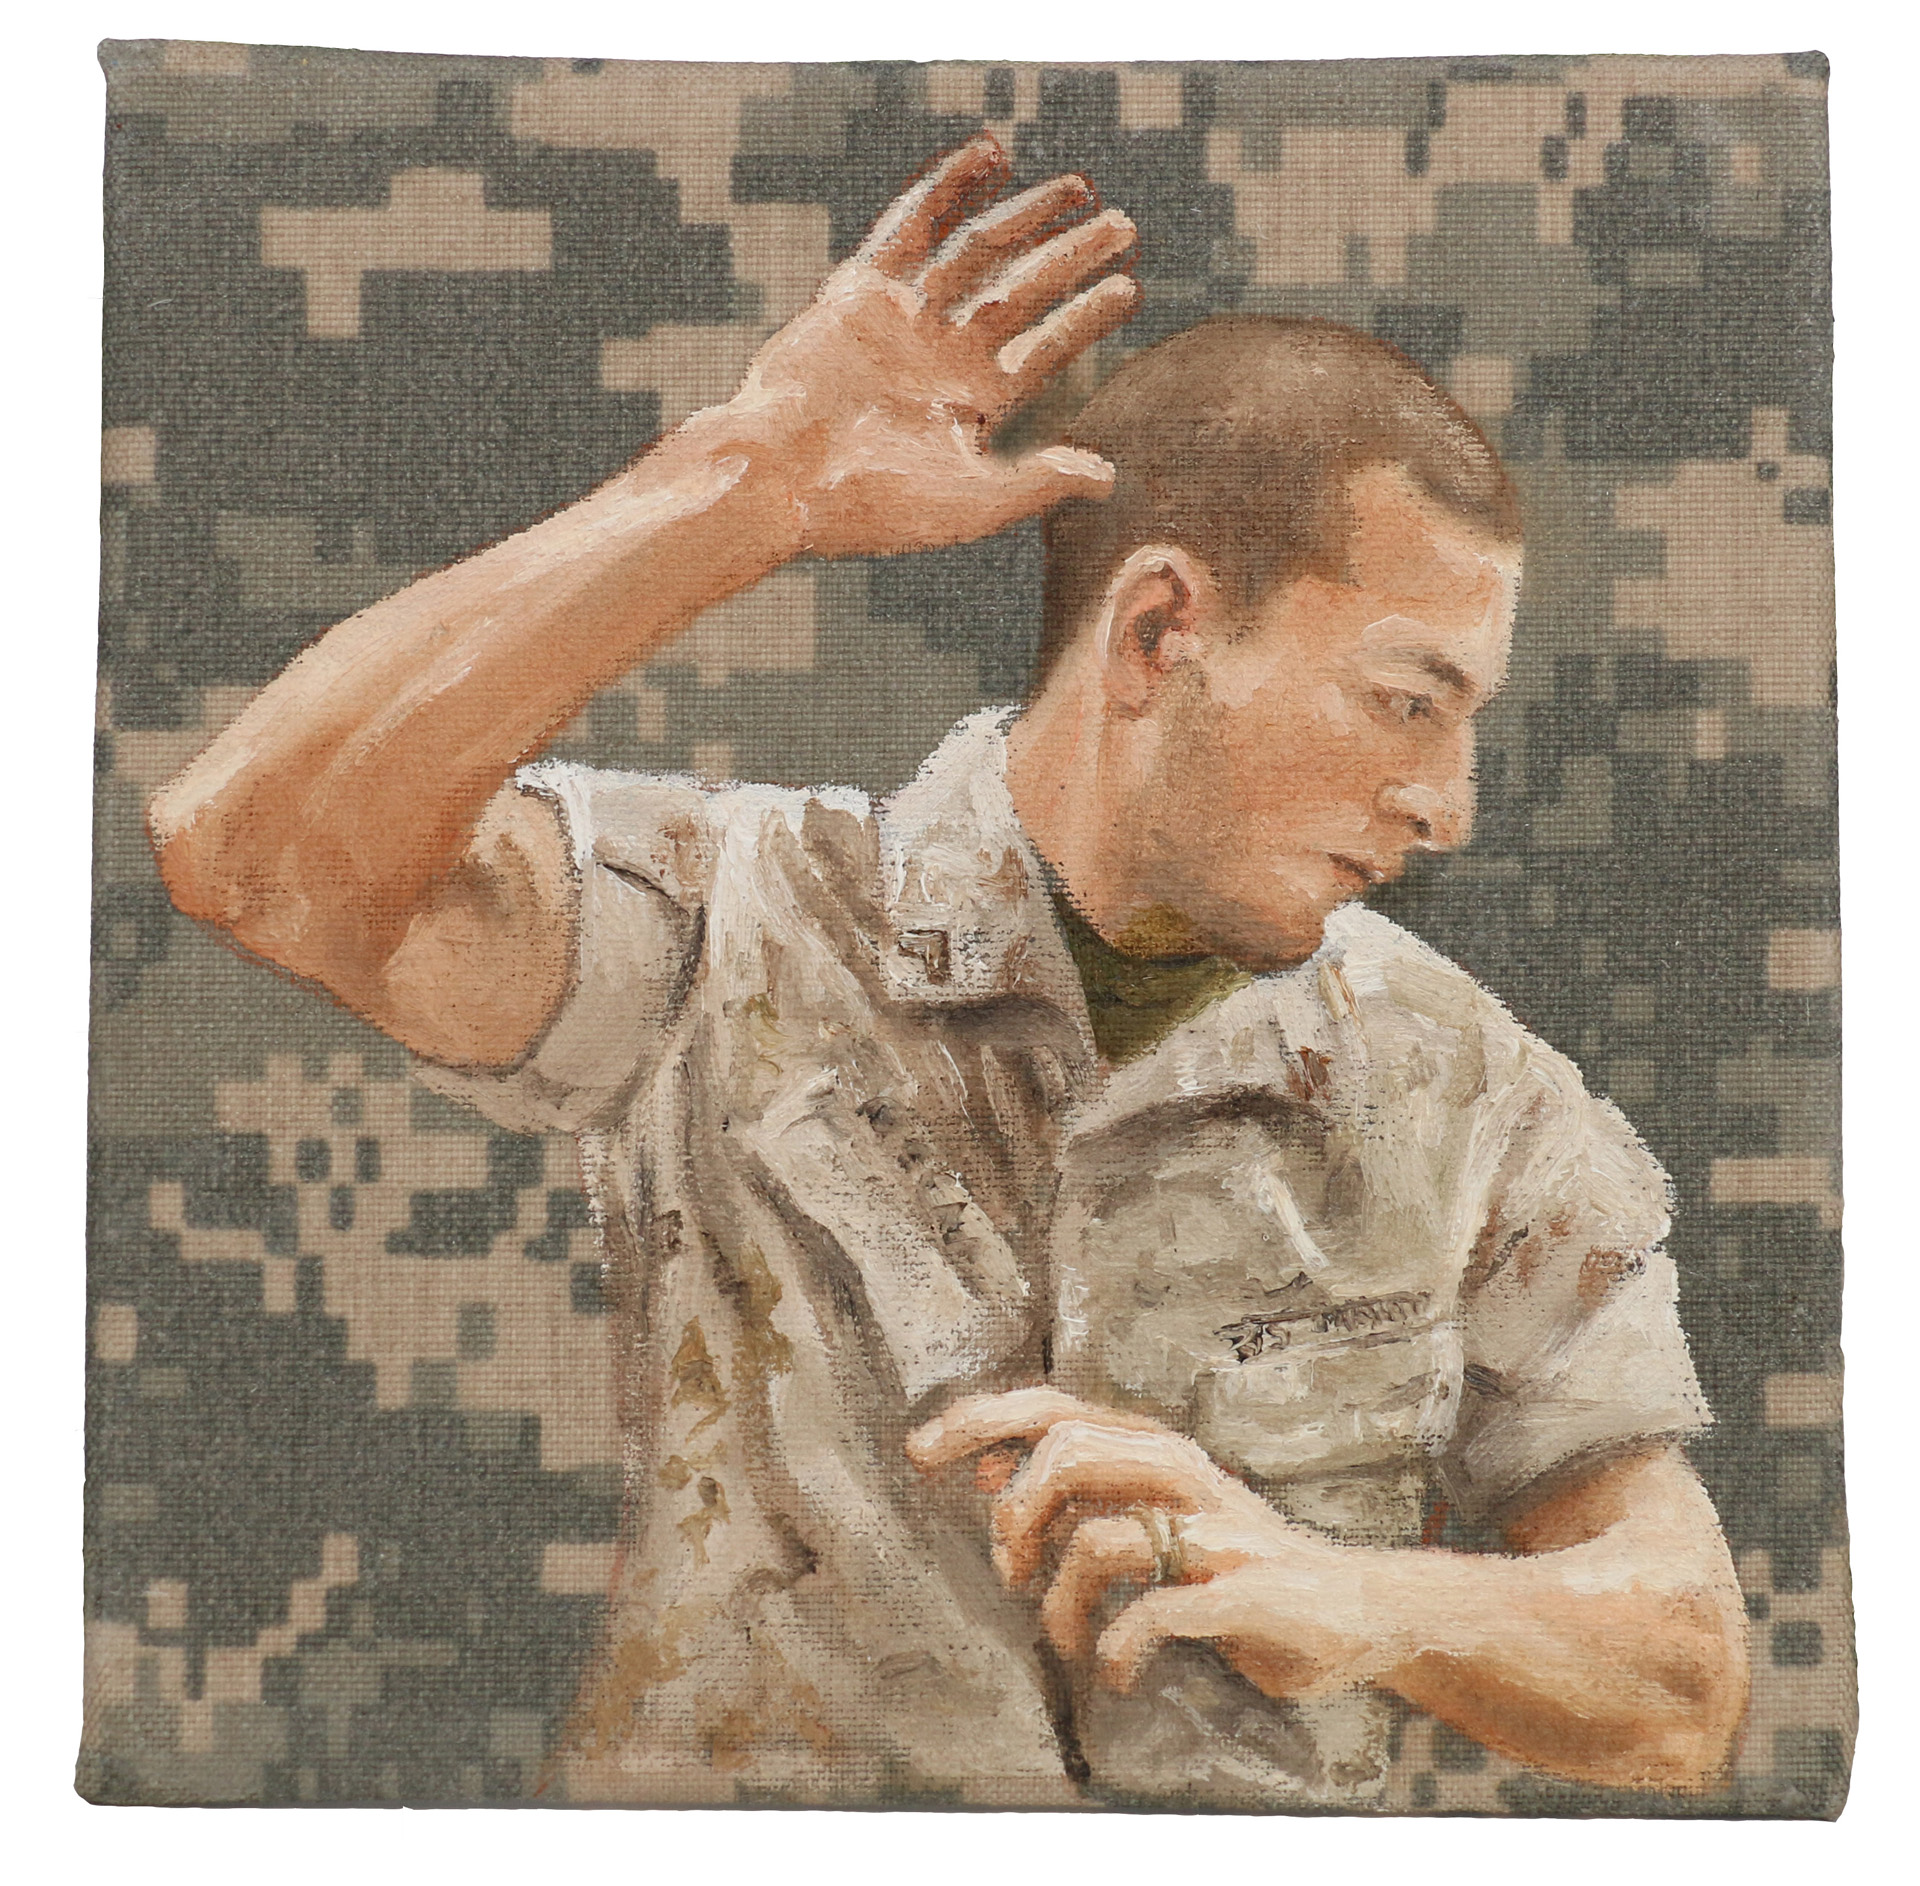 "Queror 3, 2014Oils on US tactical fabric6""h x 6""w"